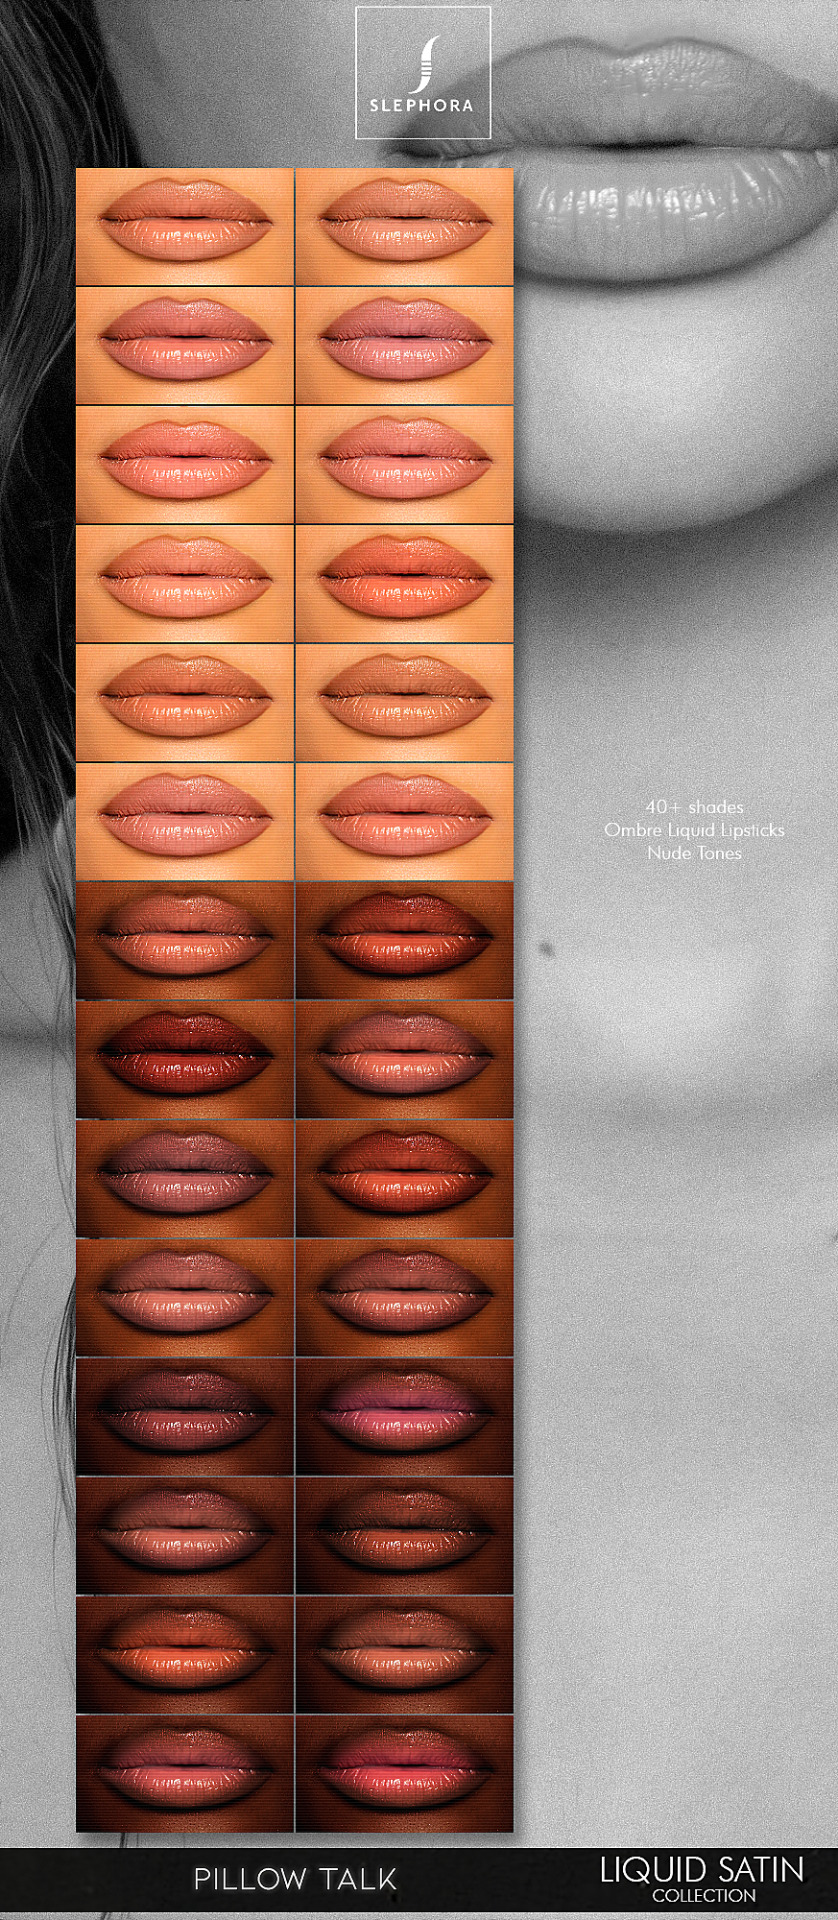 Pillow Talk Lips by Slephora